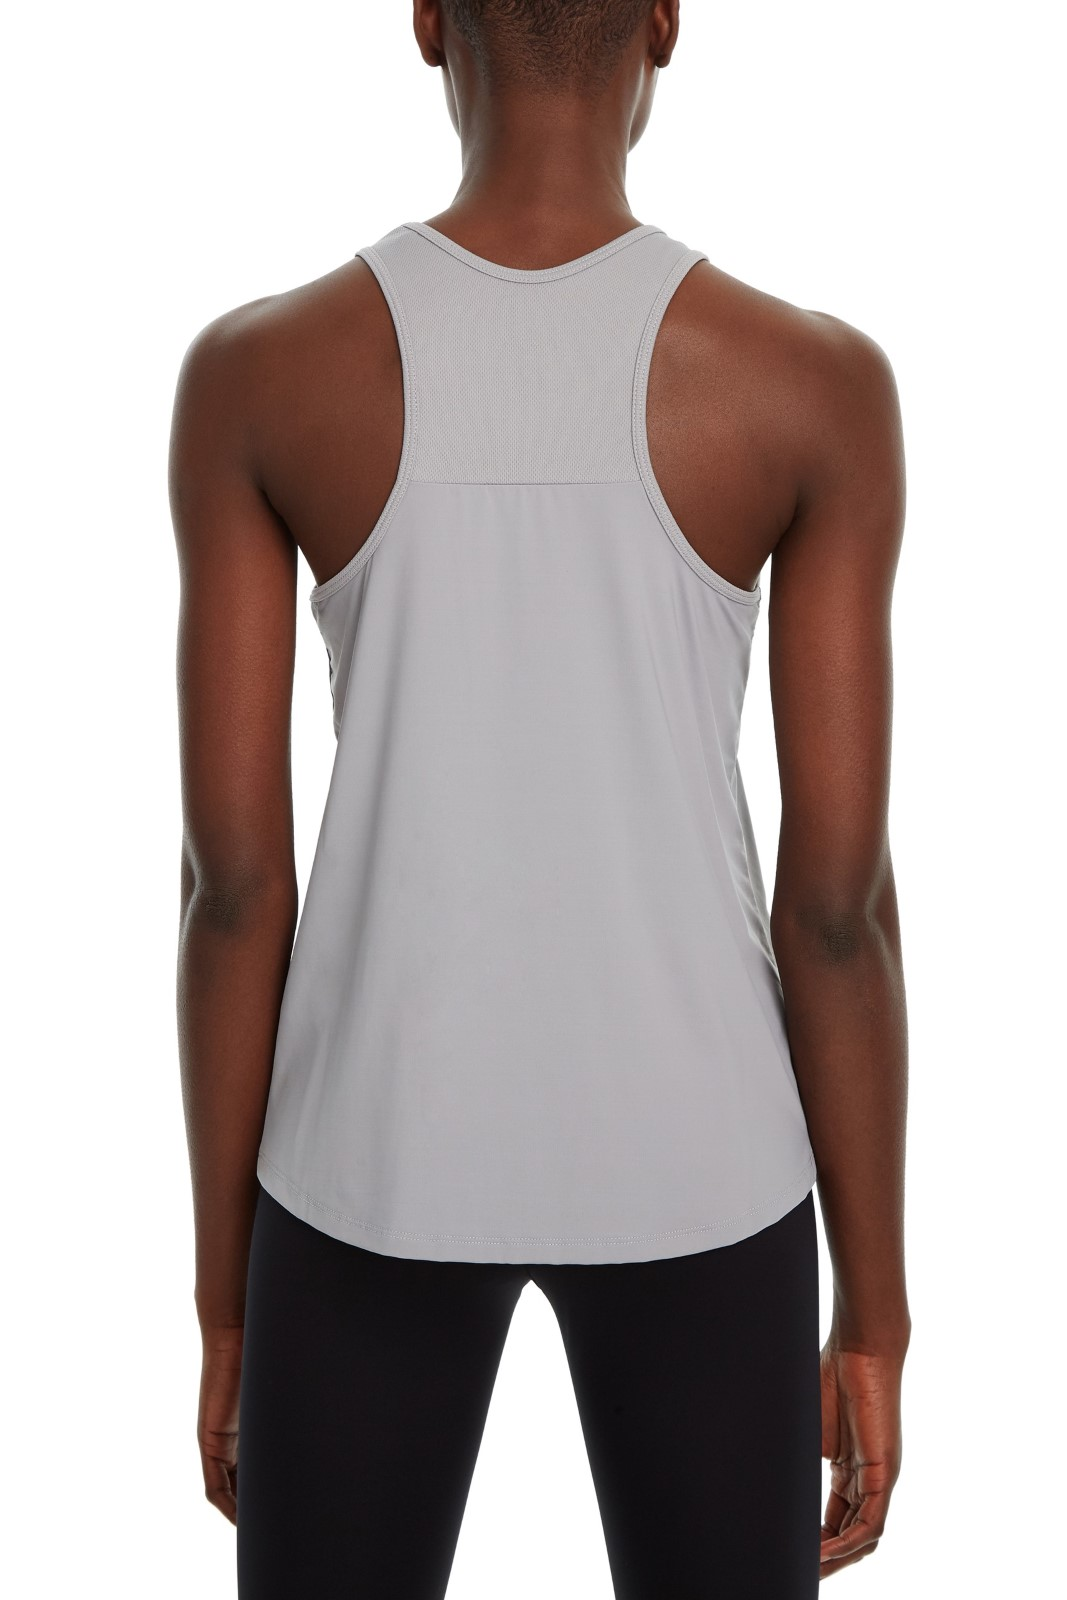 Desigual grey sports top Tank Essentials